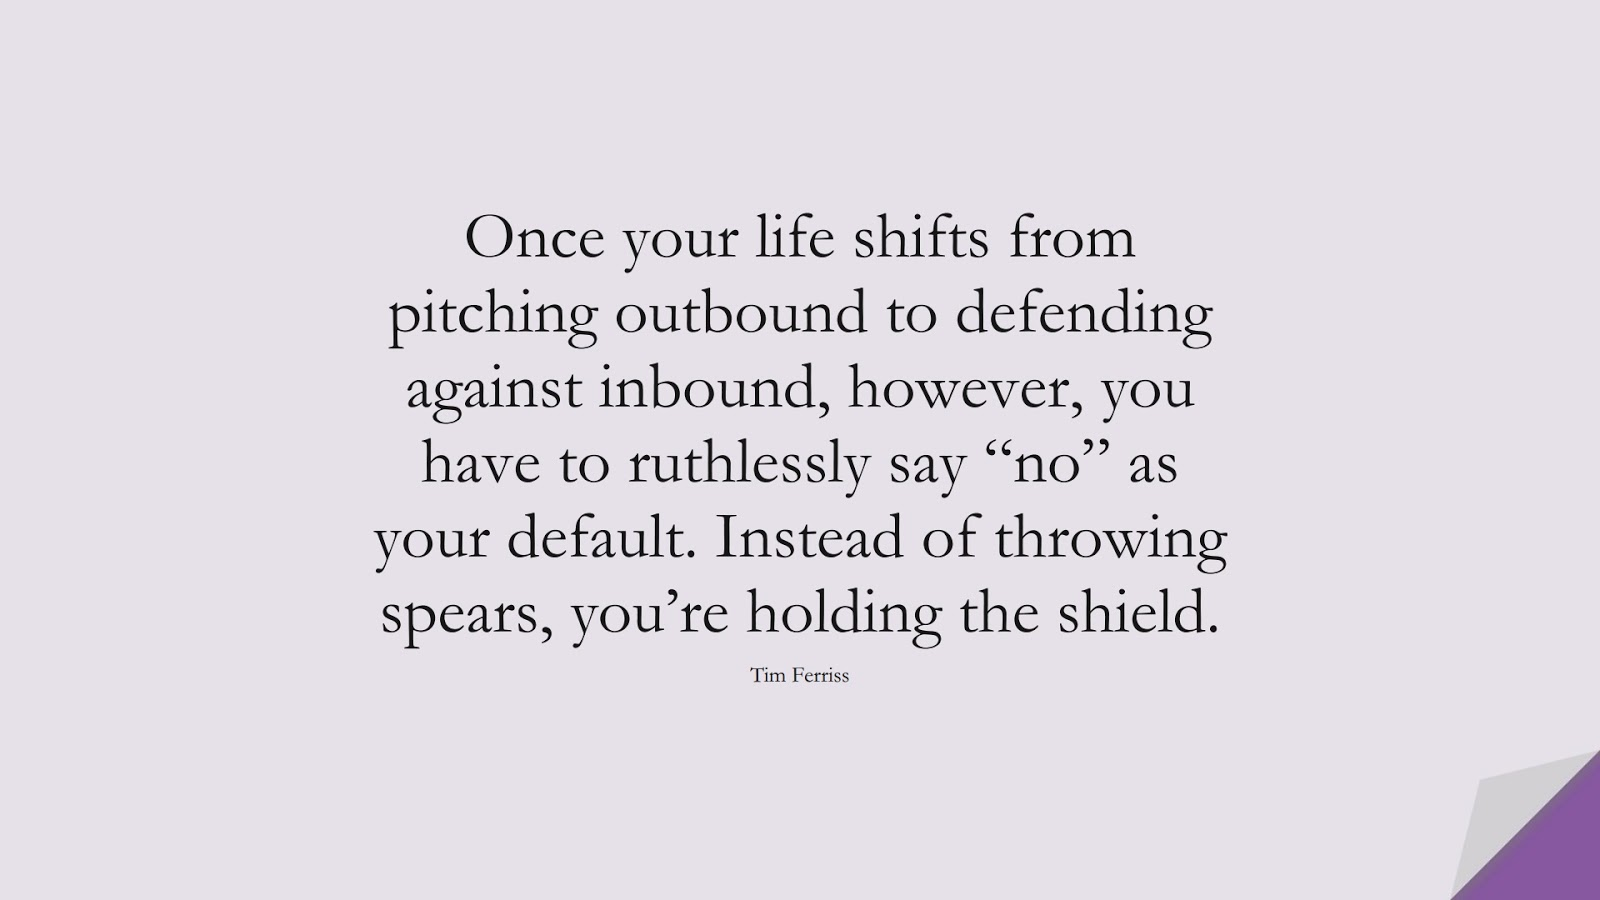 """Once your life shifts from pitching outbound to defending against inbound, however, you have to ruthlessly say """"no"""" as your default. Instead of throwing spears, you're holding the shield. (Tim Ferriss);  #TimFerrissQuotes"""